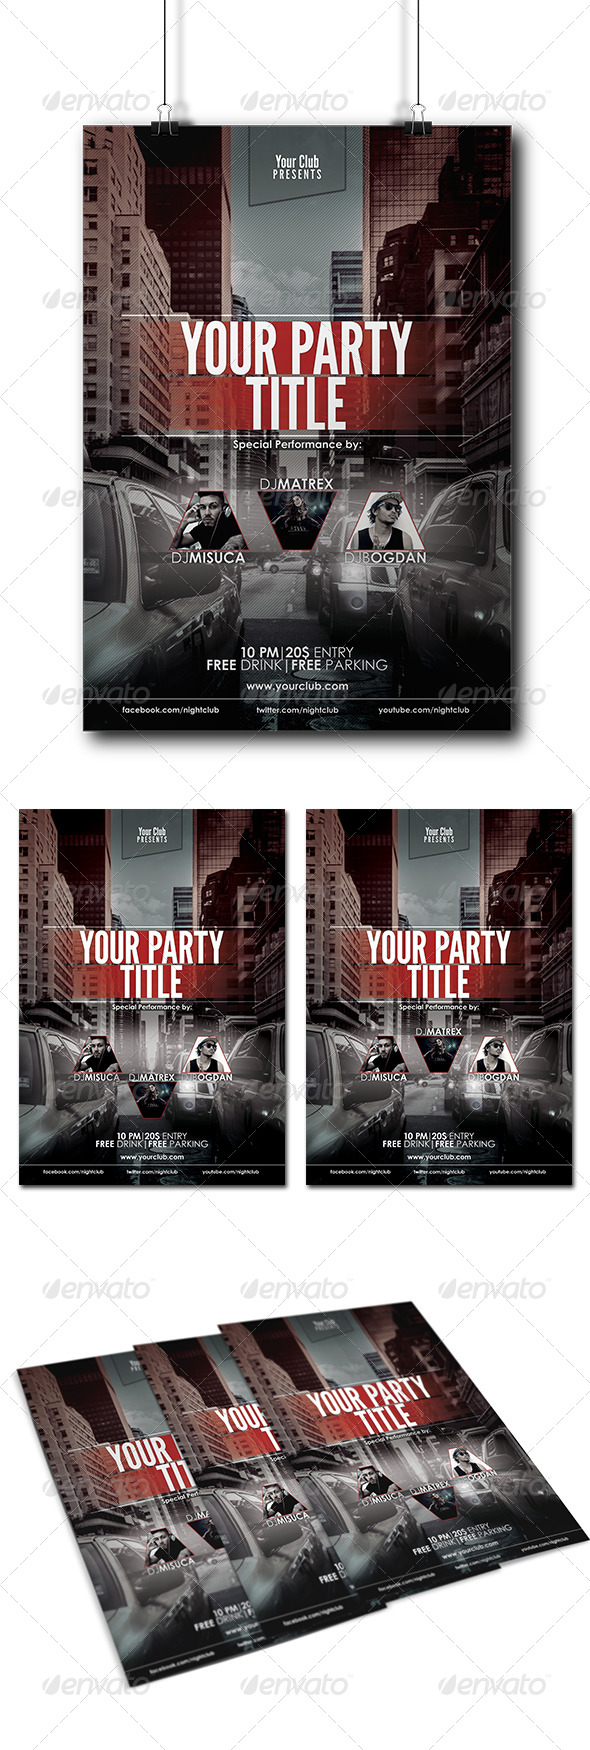 Event/Club Party Flyer/Poster - Clubs & Parties Events